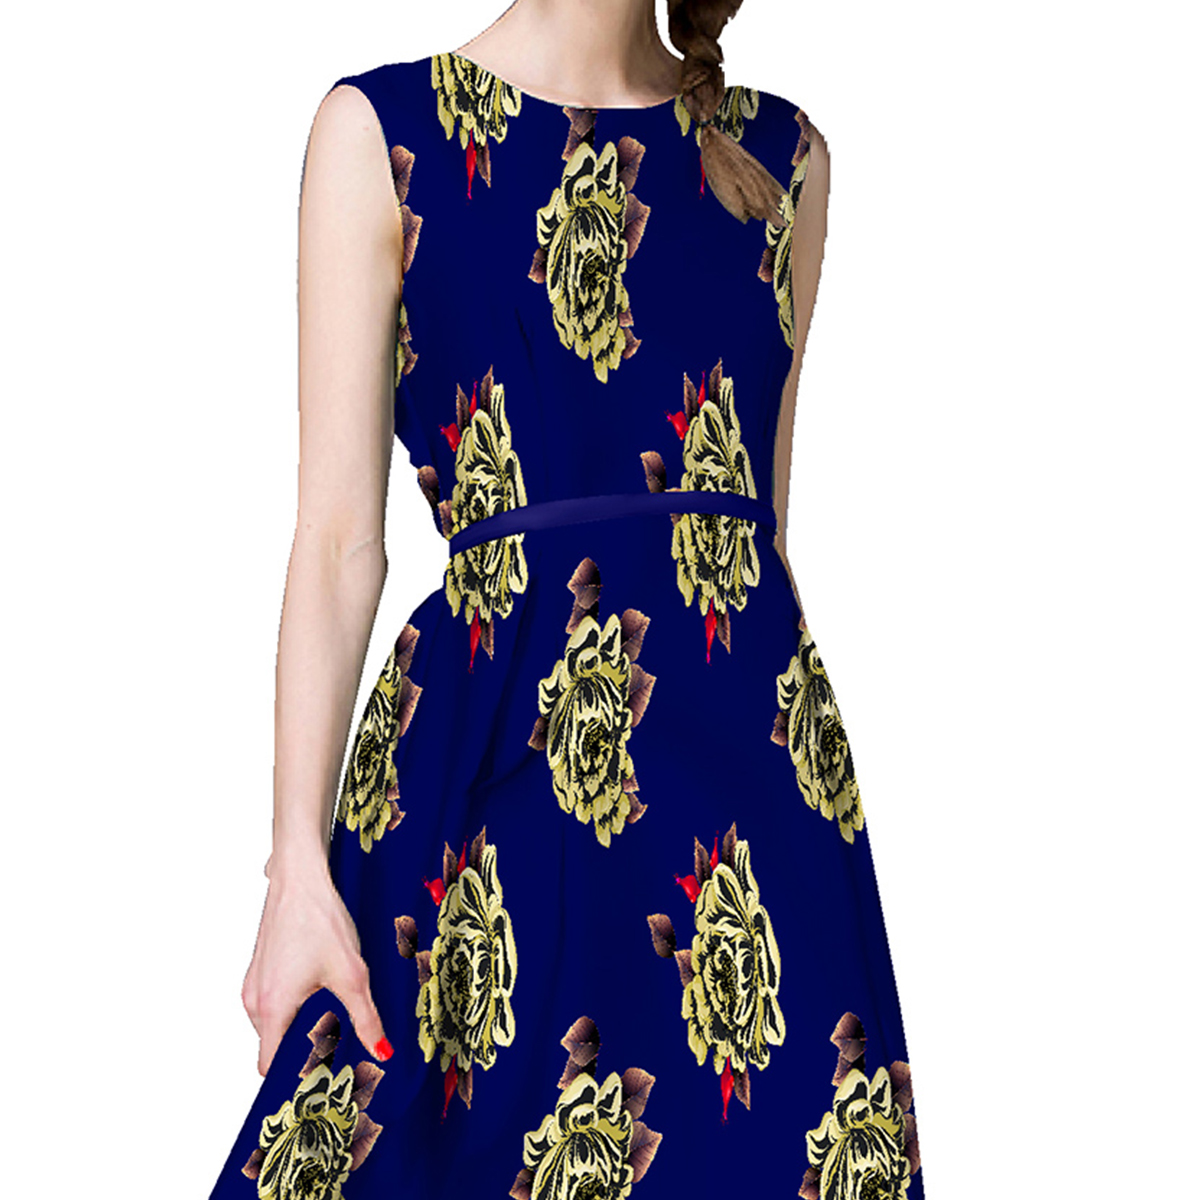 Dark Blue Japan Satin Printed Dress